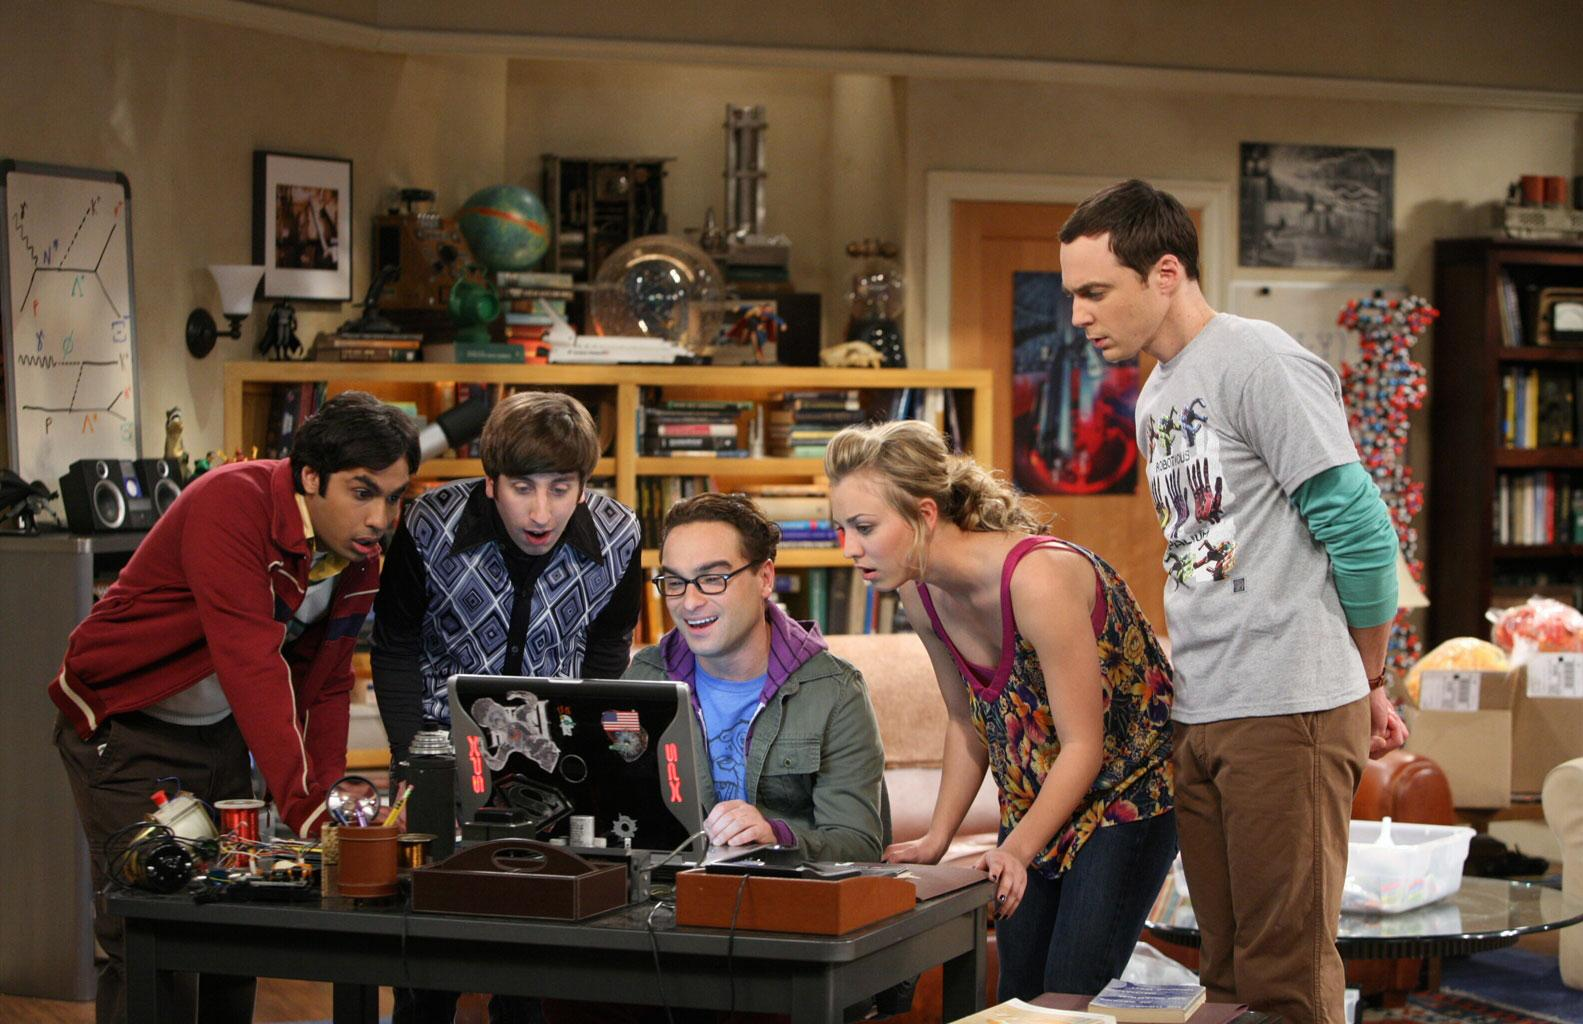 http://tvbreakroom.com/wp-content/uploads/2011/04/The-Big-Bang-Theory-029.jpg